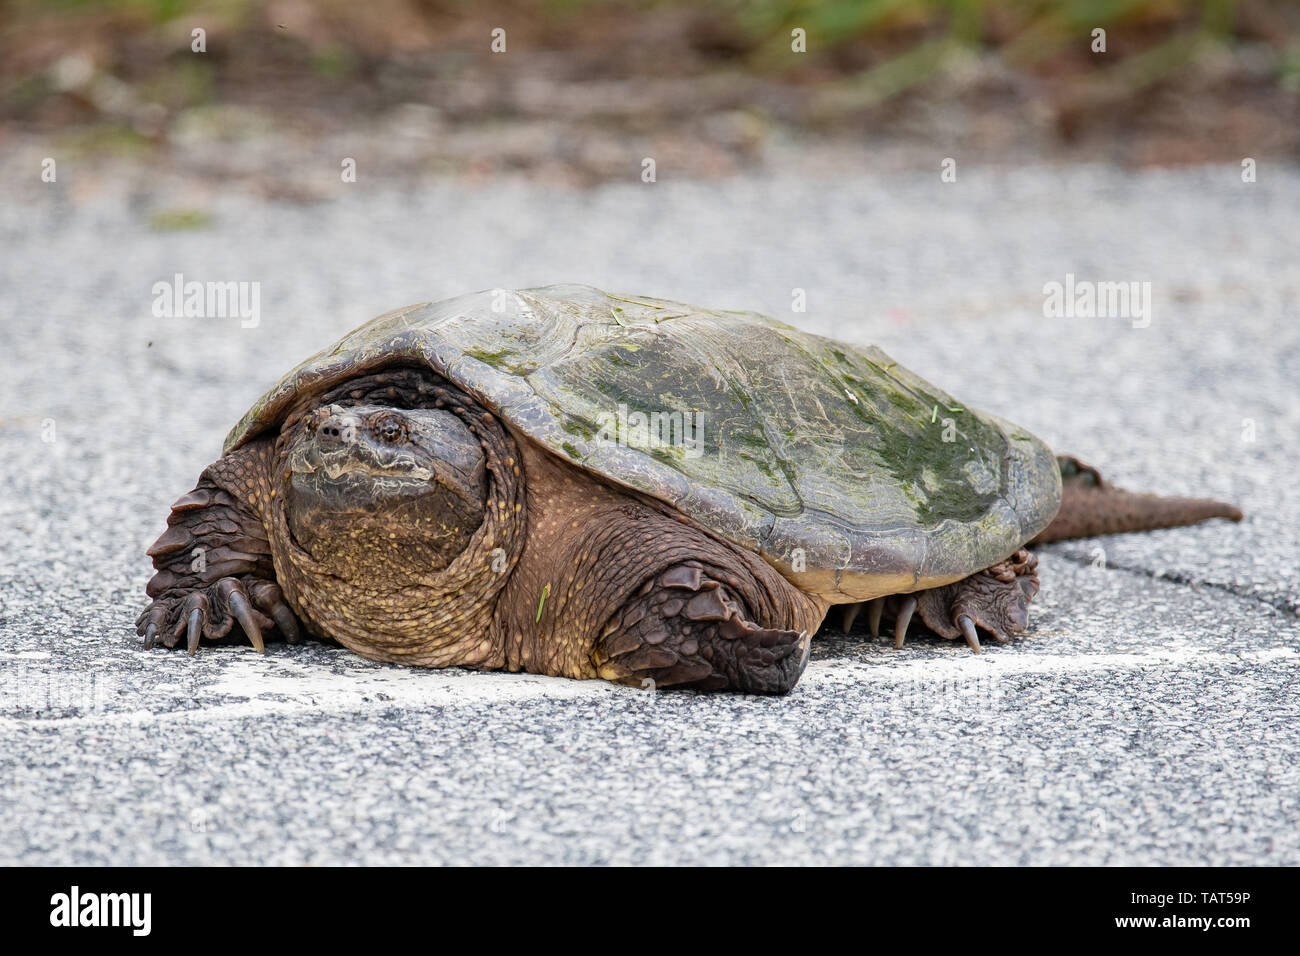 Portrait of a large common snapping turtle, Chelydra serpentina, crossing a highway in the Adirondack Mountains, NY USA Stock Photo